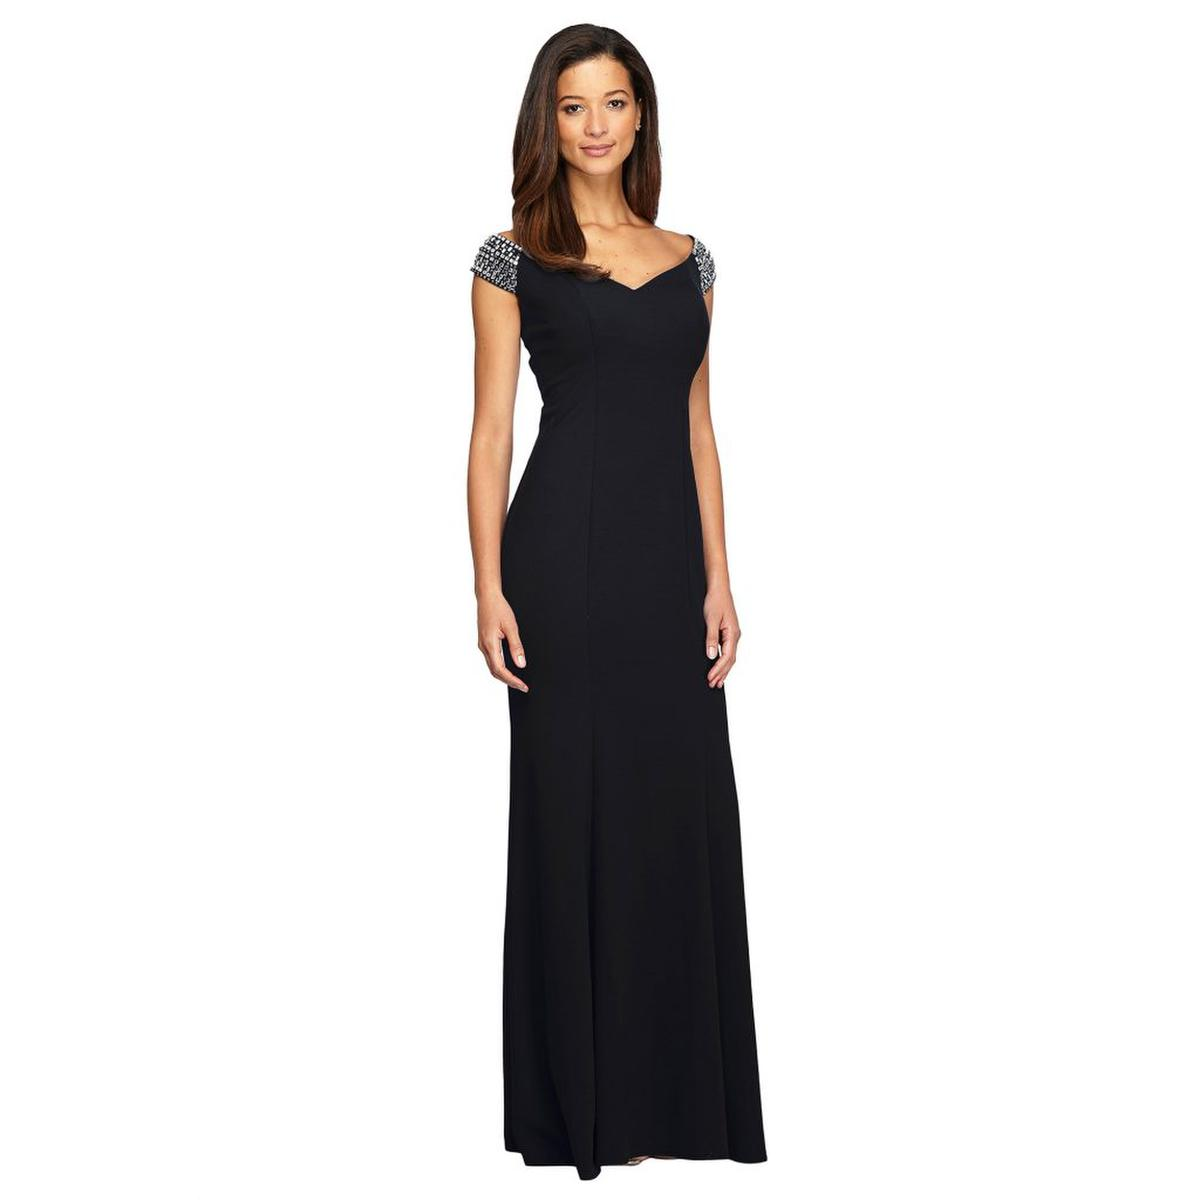 ALEX APPAREL GROUP INC - Beaded Off-the-Shoulder Jersey Gown